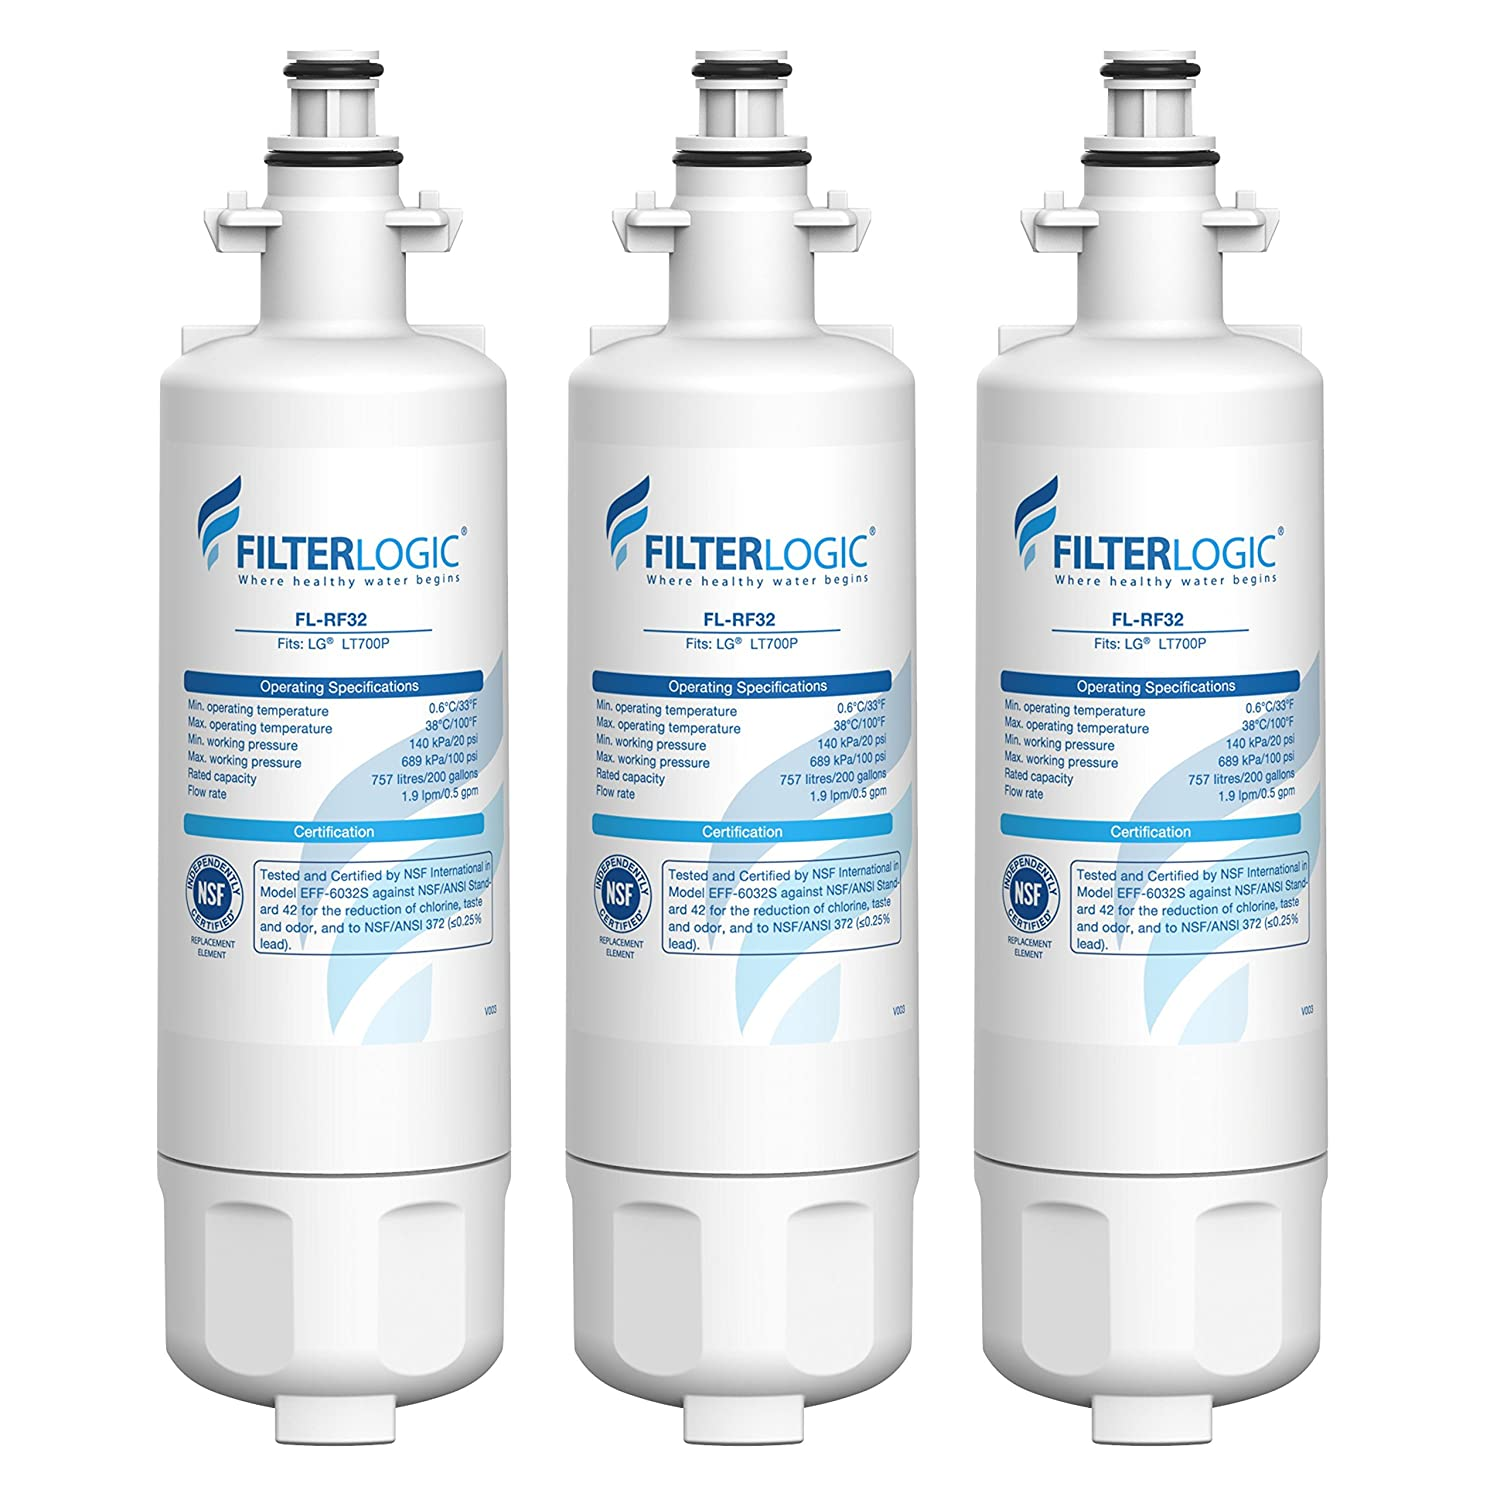 FilterLogic ADQ36006101 Refrigerator Water Filter, Replacement for LG LT700P, Kenmore 9690, 46-9690, 469690, ADQ36006102, LT700PC, WSL-3, R-9690, LFXS30766S, LFXC24726D, LFXS29766S (Pack of 3)